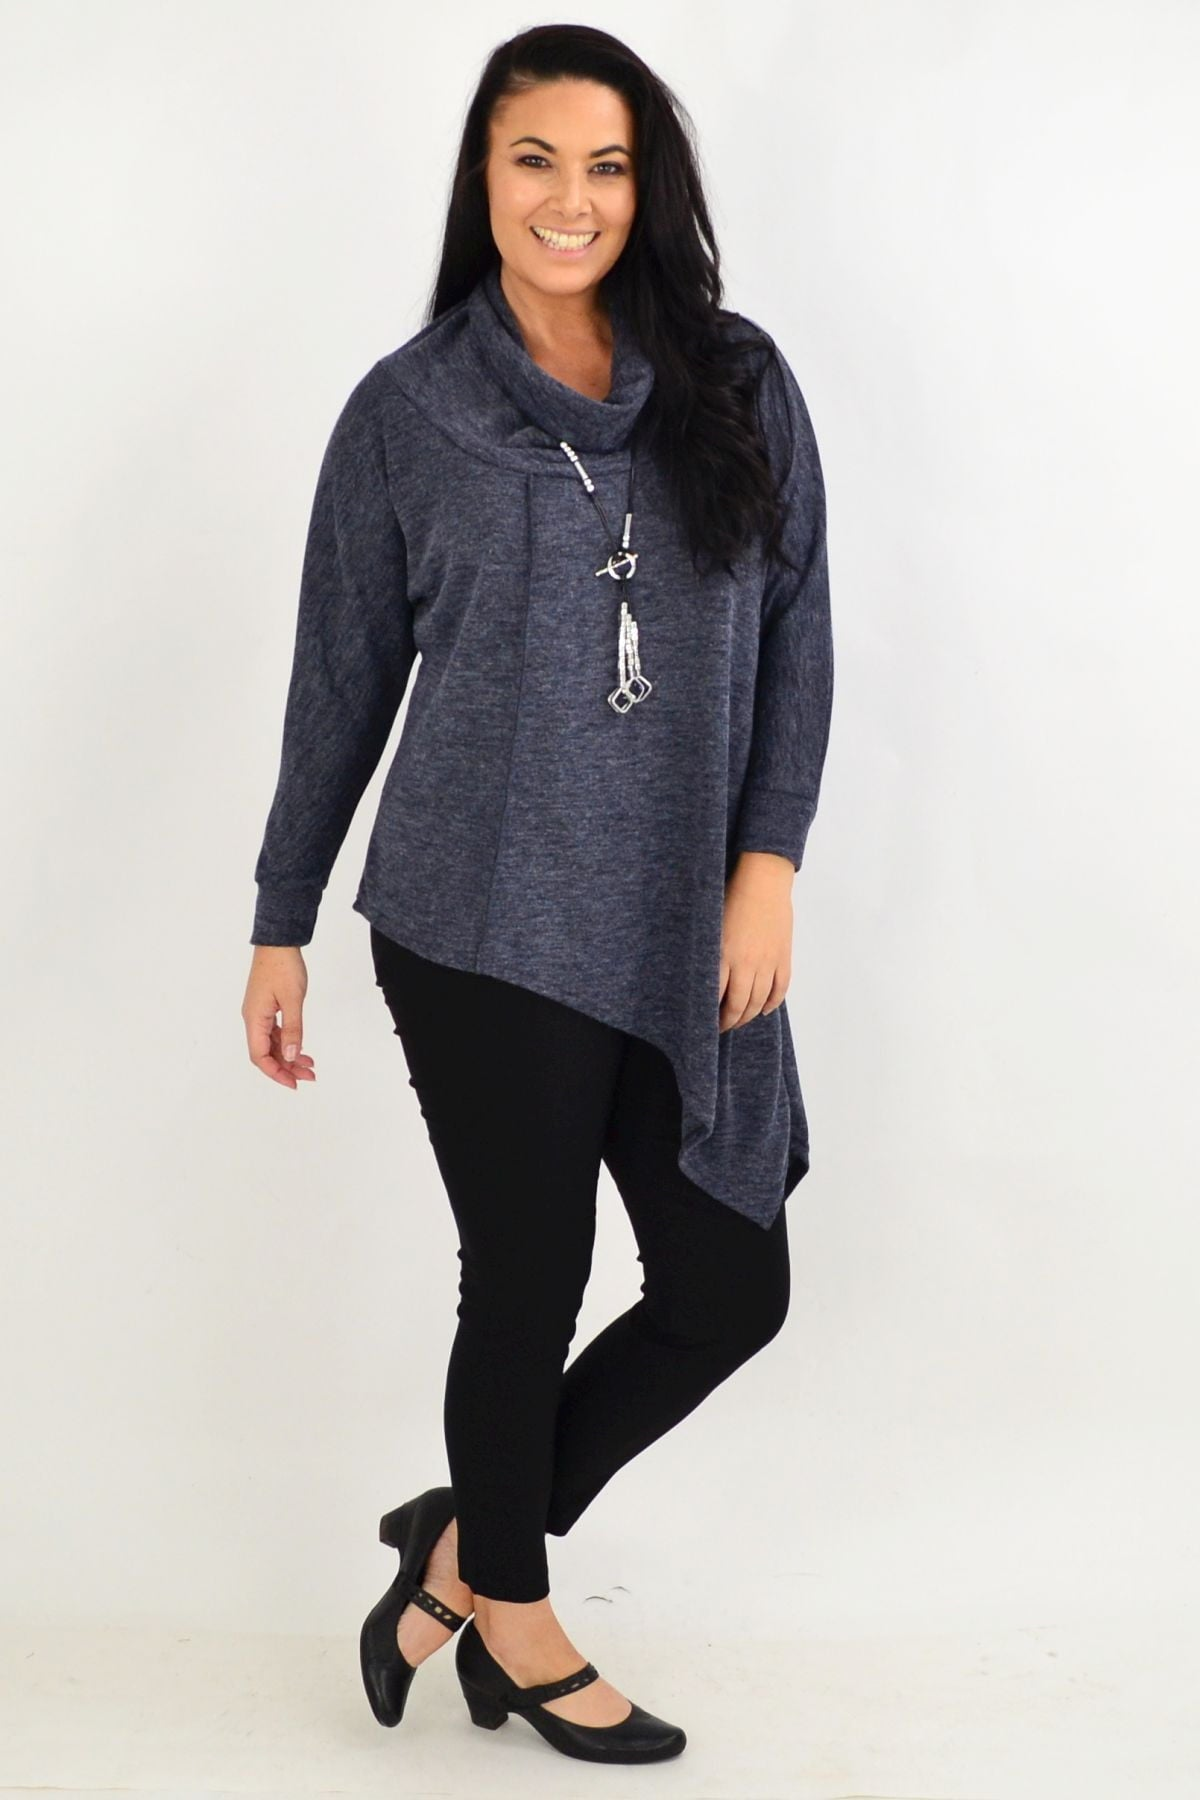 Charcoal Grey Asymmetrical Rolled Neck Jumper | I Love Tunics | Tunic Tops | Tunic | Tunic Dresses  | womens clothing online